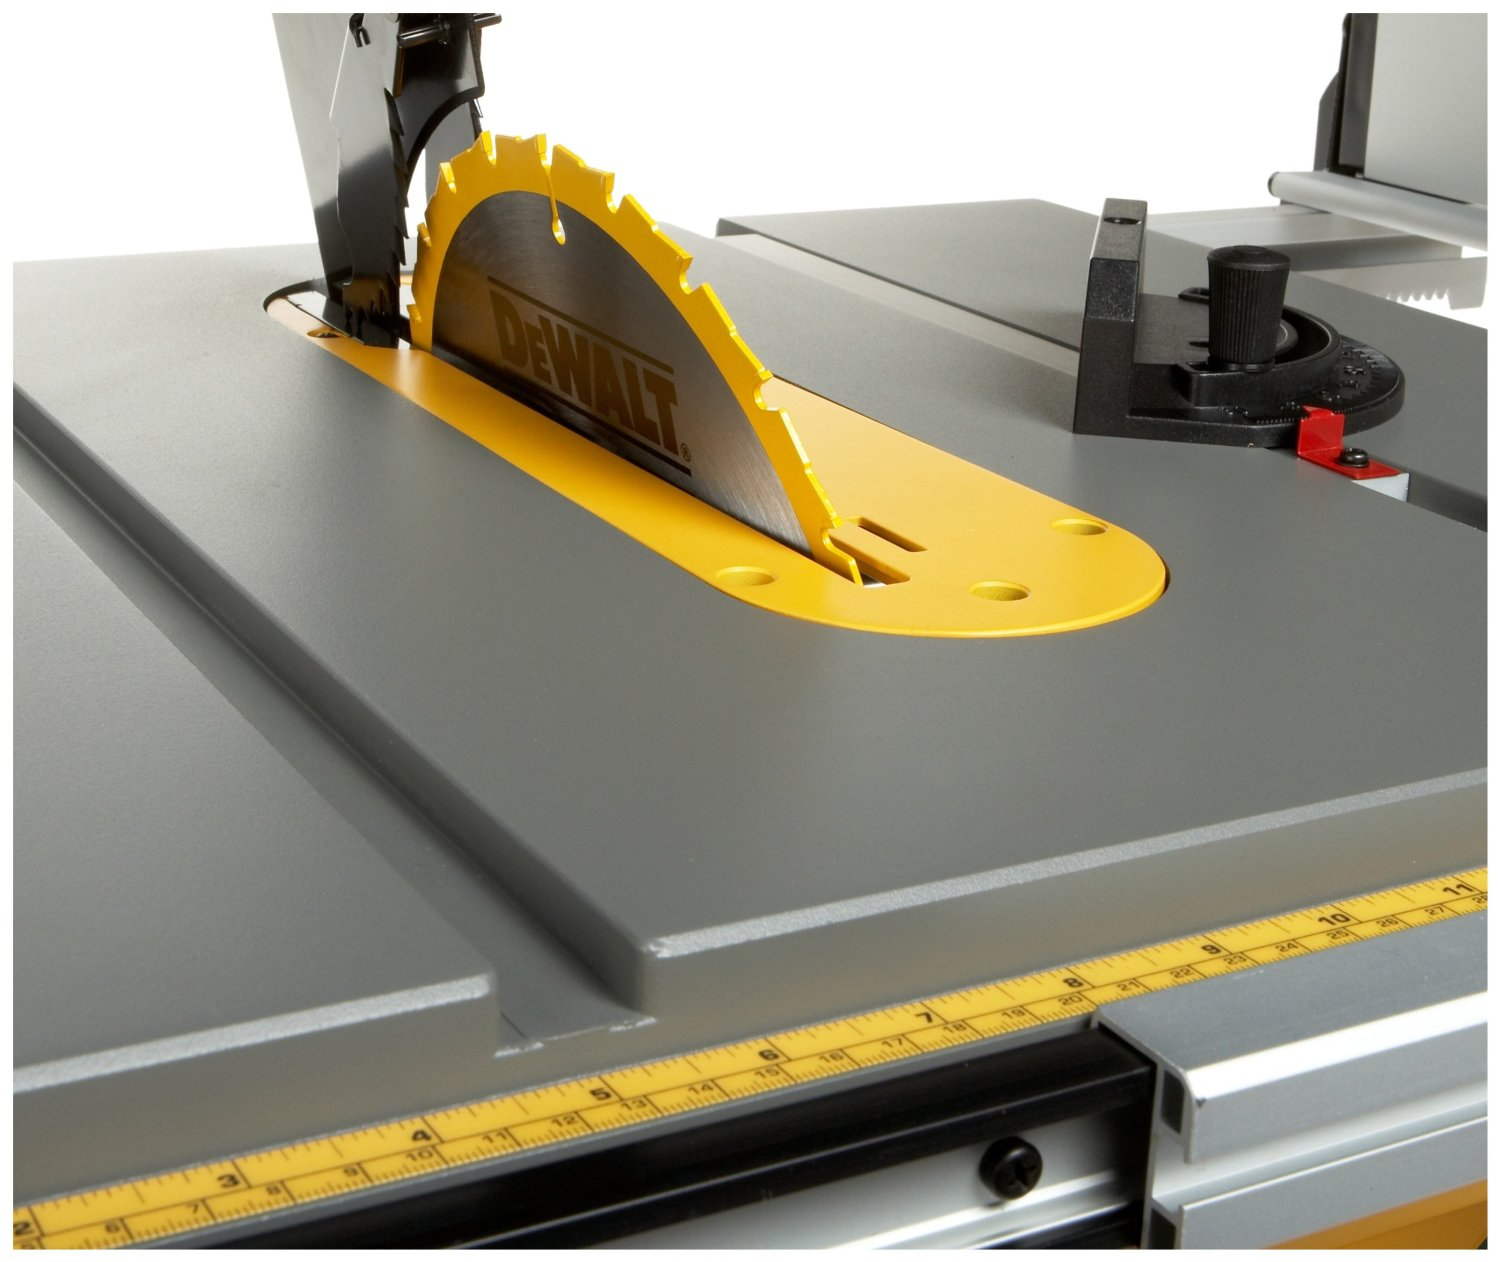 Dewalt Dw745 Review Portable Table Saw